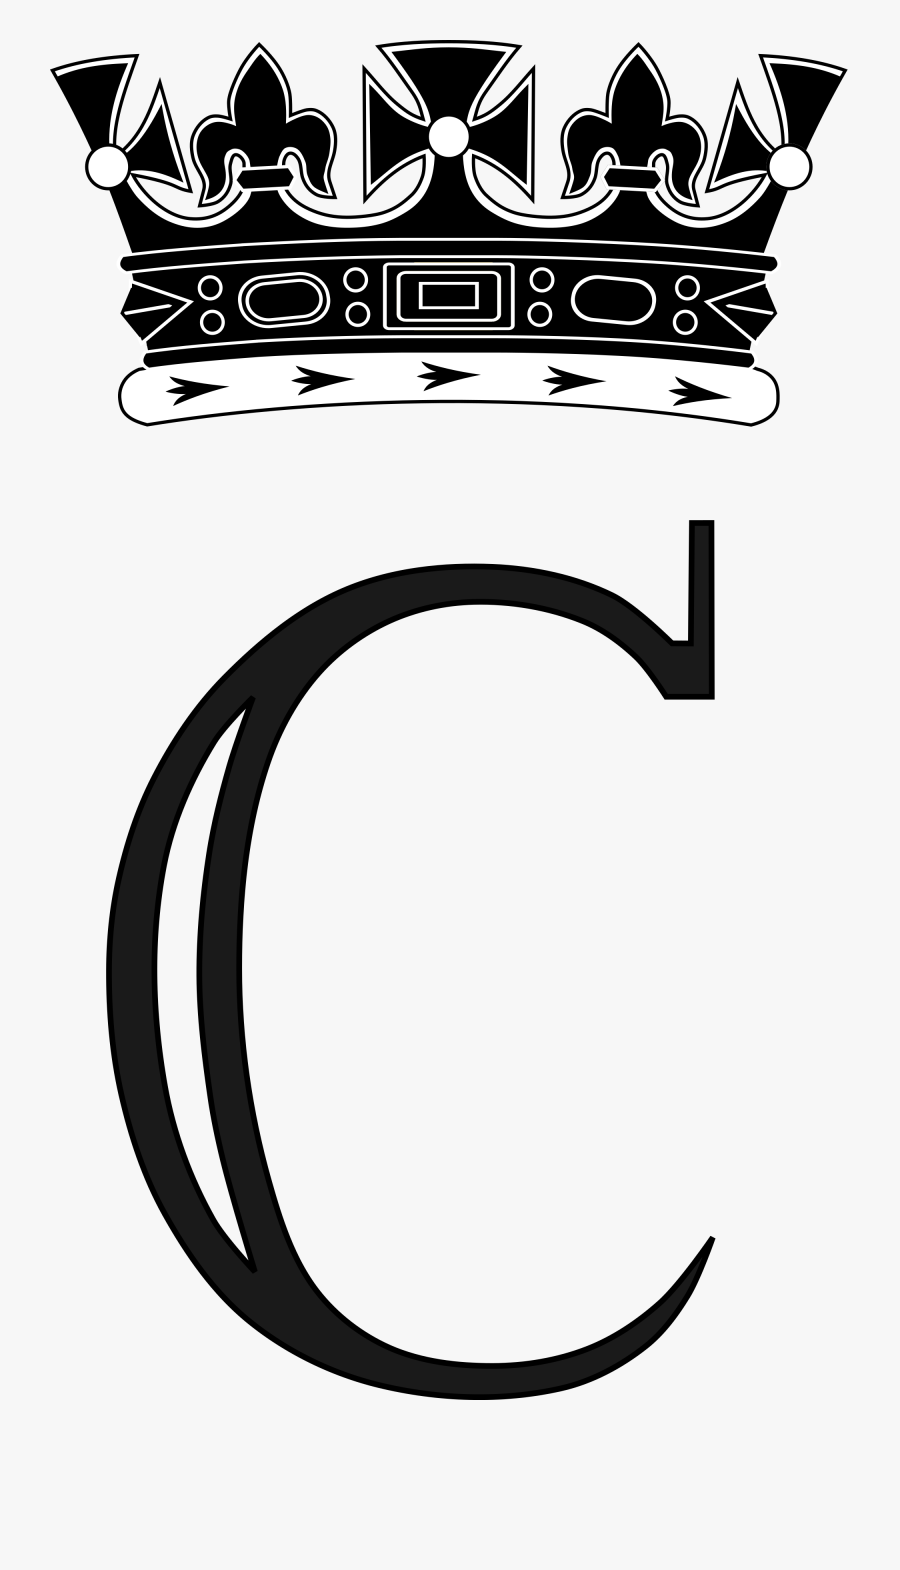 Crown Clipart Royal Monogram - Prince Harry Royal Monogram, Transparent Clipart